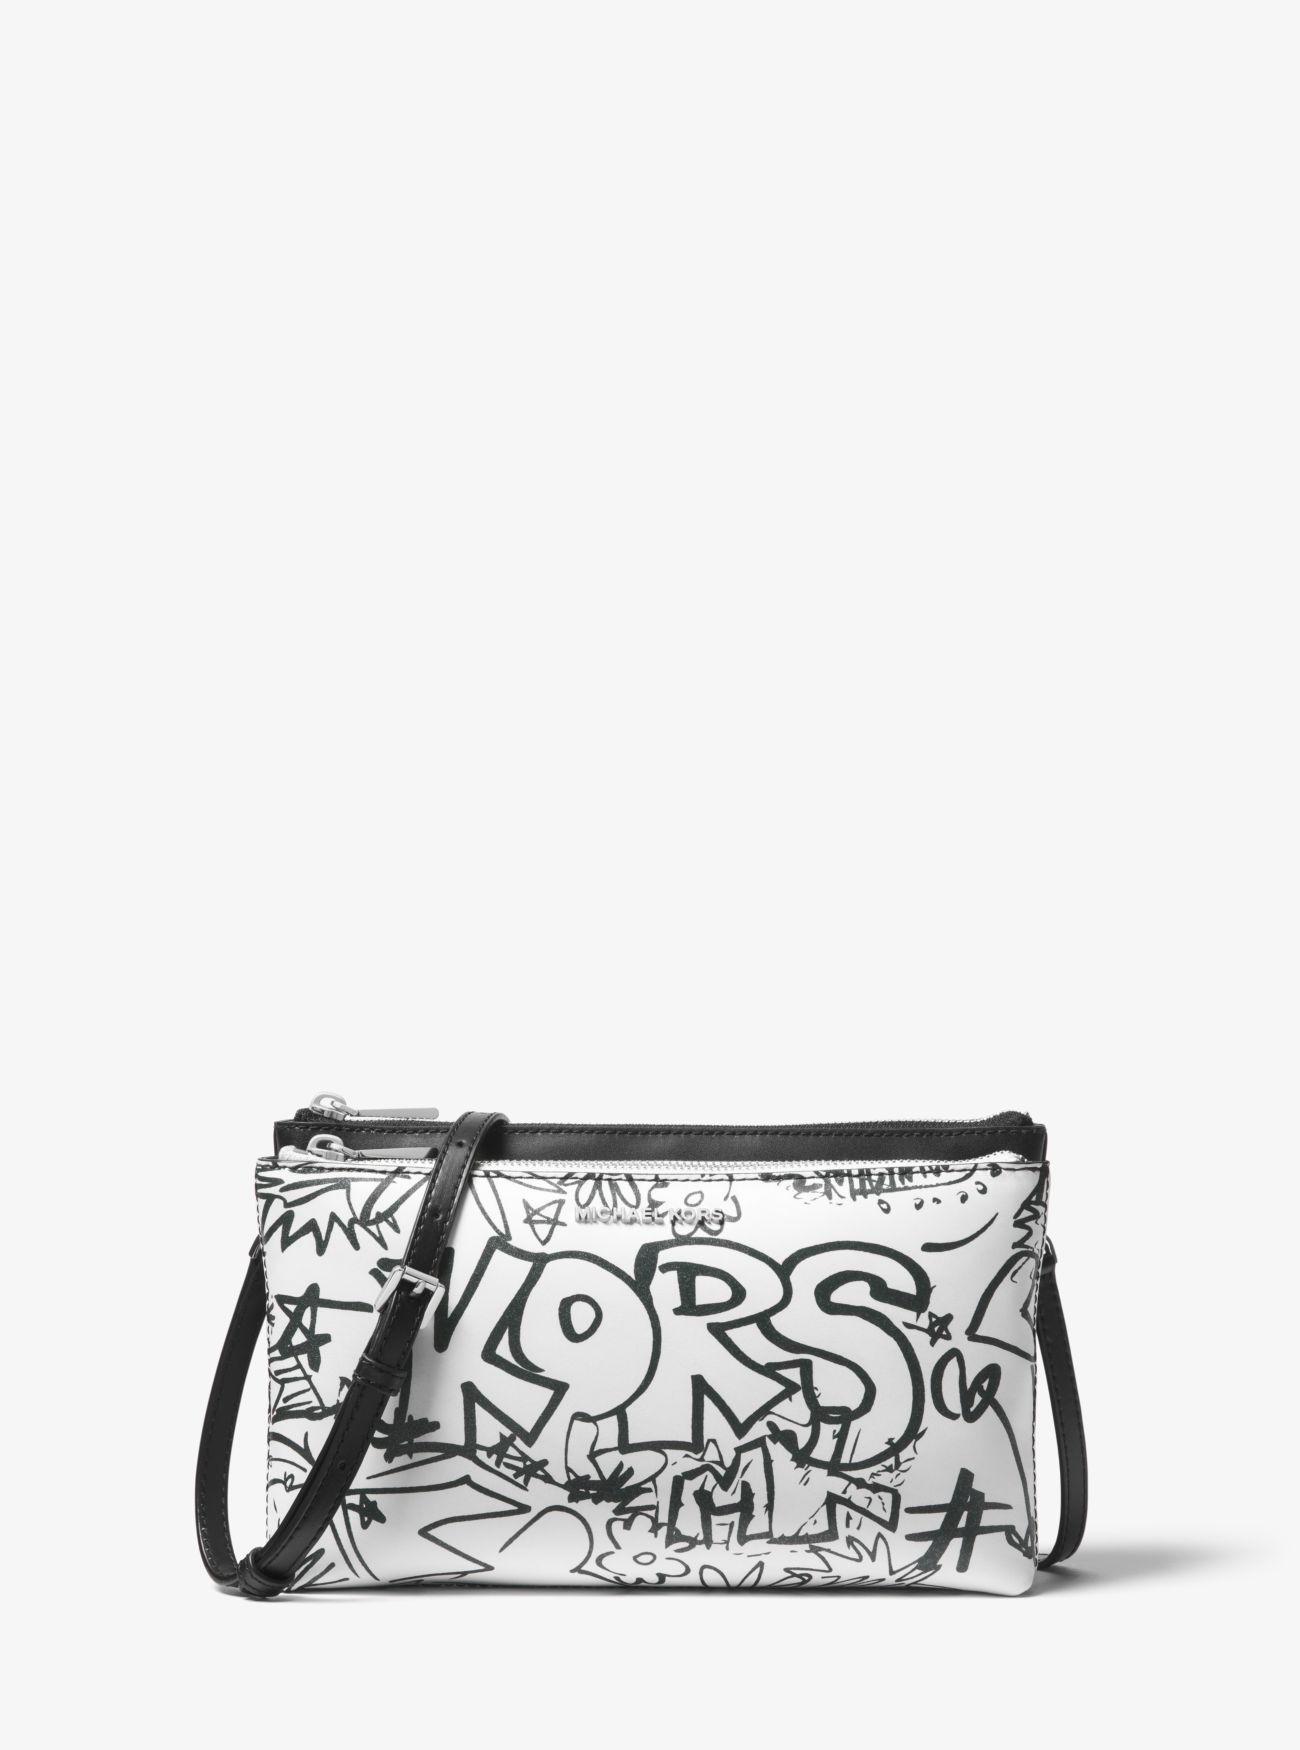 5f9e94750d Adele Graffiti Leather Crossbody in 2018